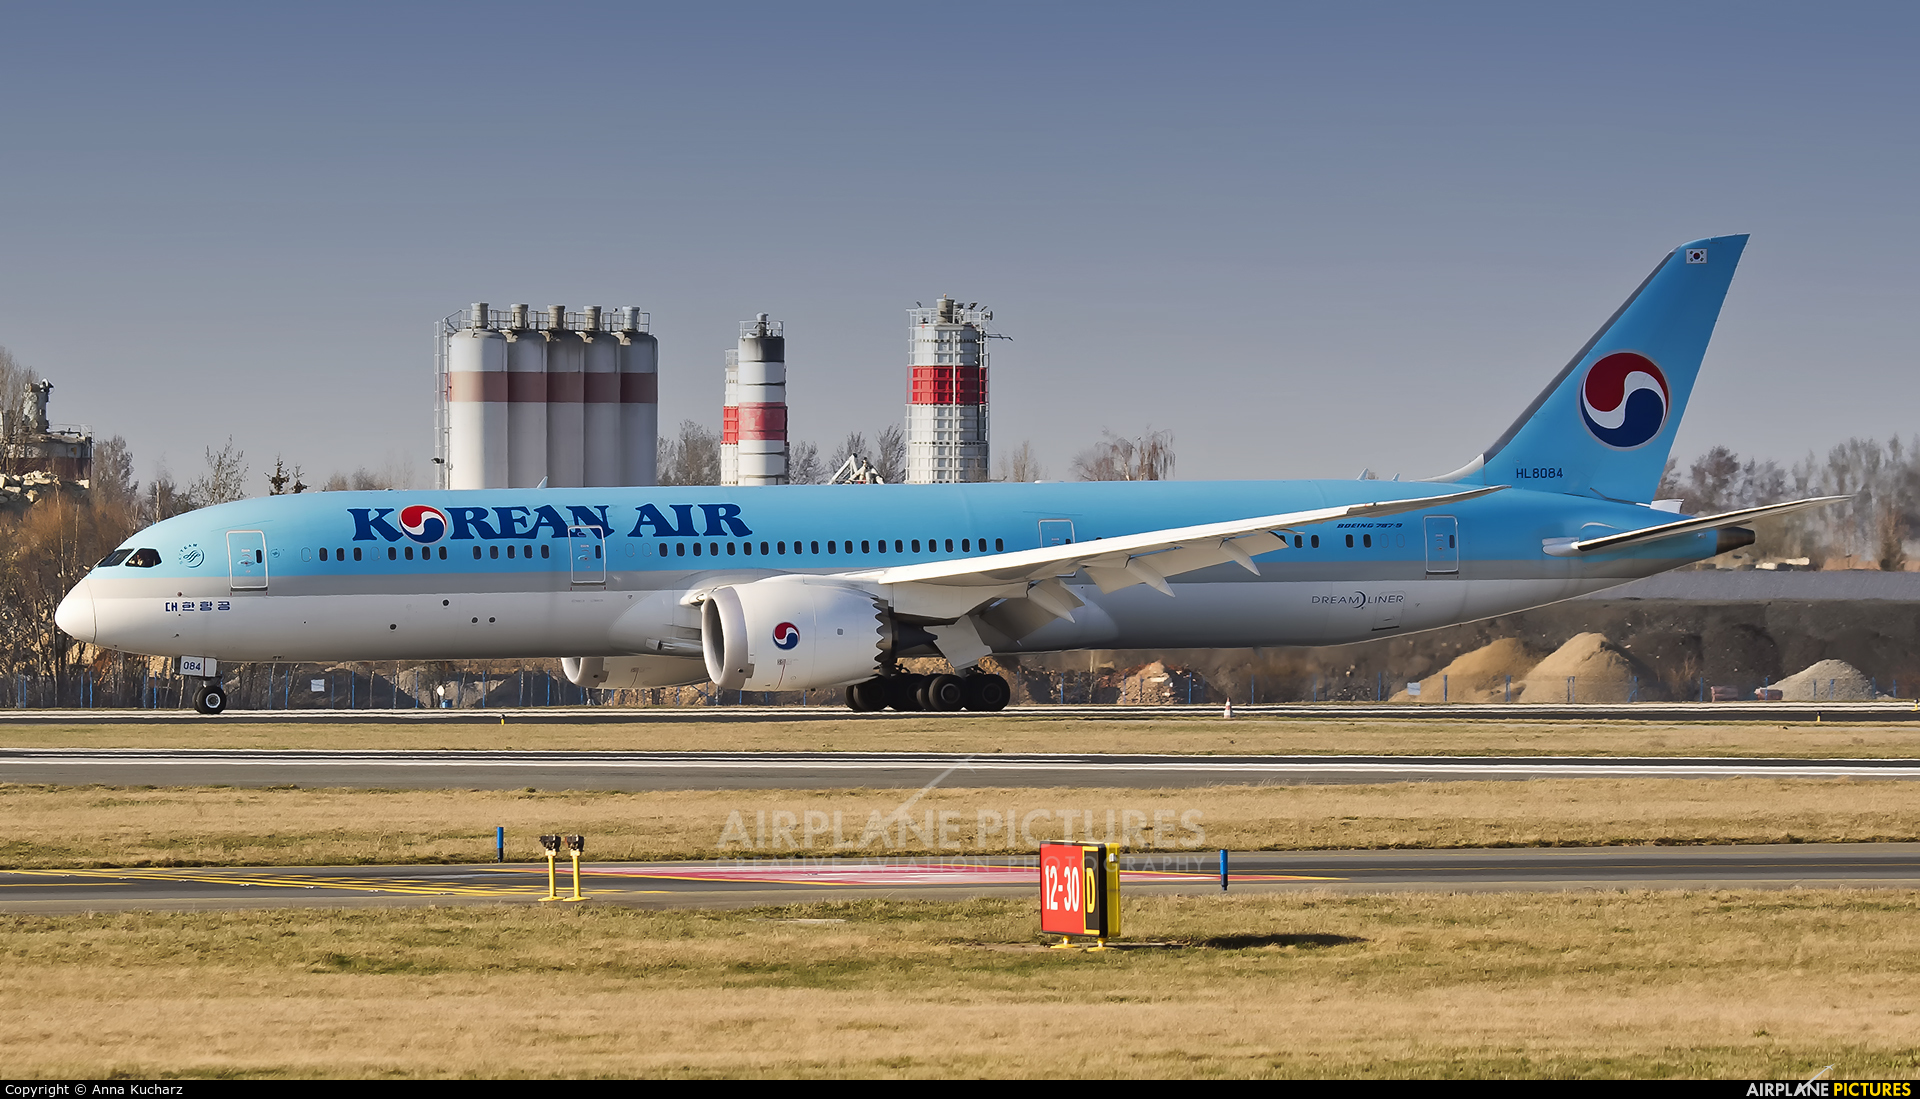 Korean Air HL8084 aircraft at Prague - Václav Havel